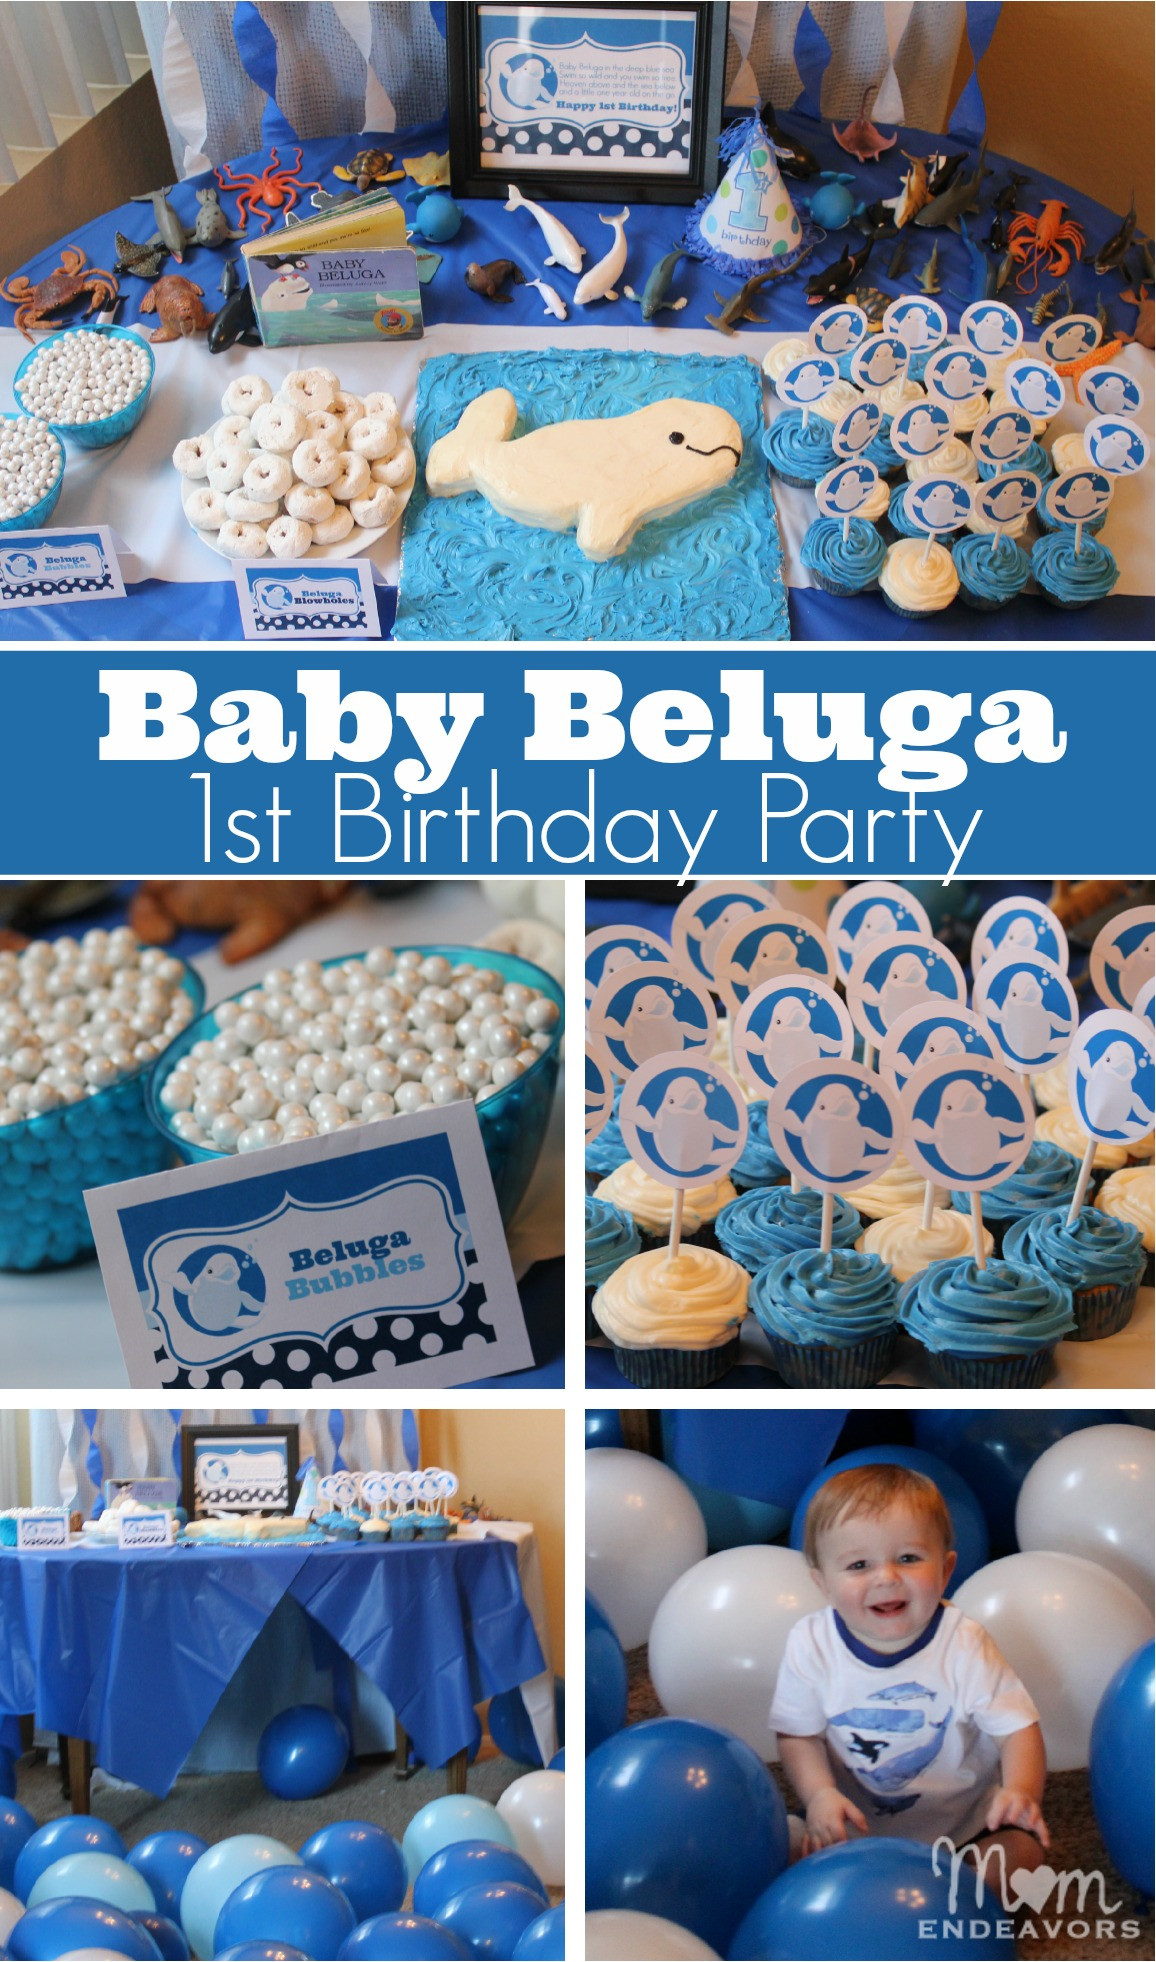 Best ideas about Baby First Birthday Decorations . Save or Pin Baby Beluga 1st Birthday Party Now.